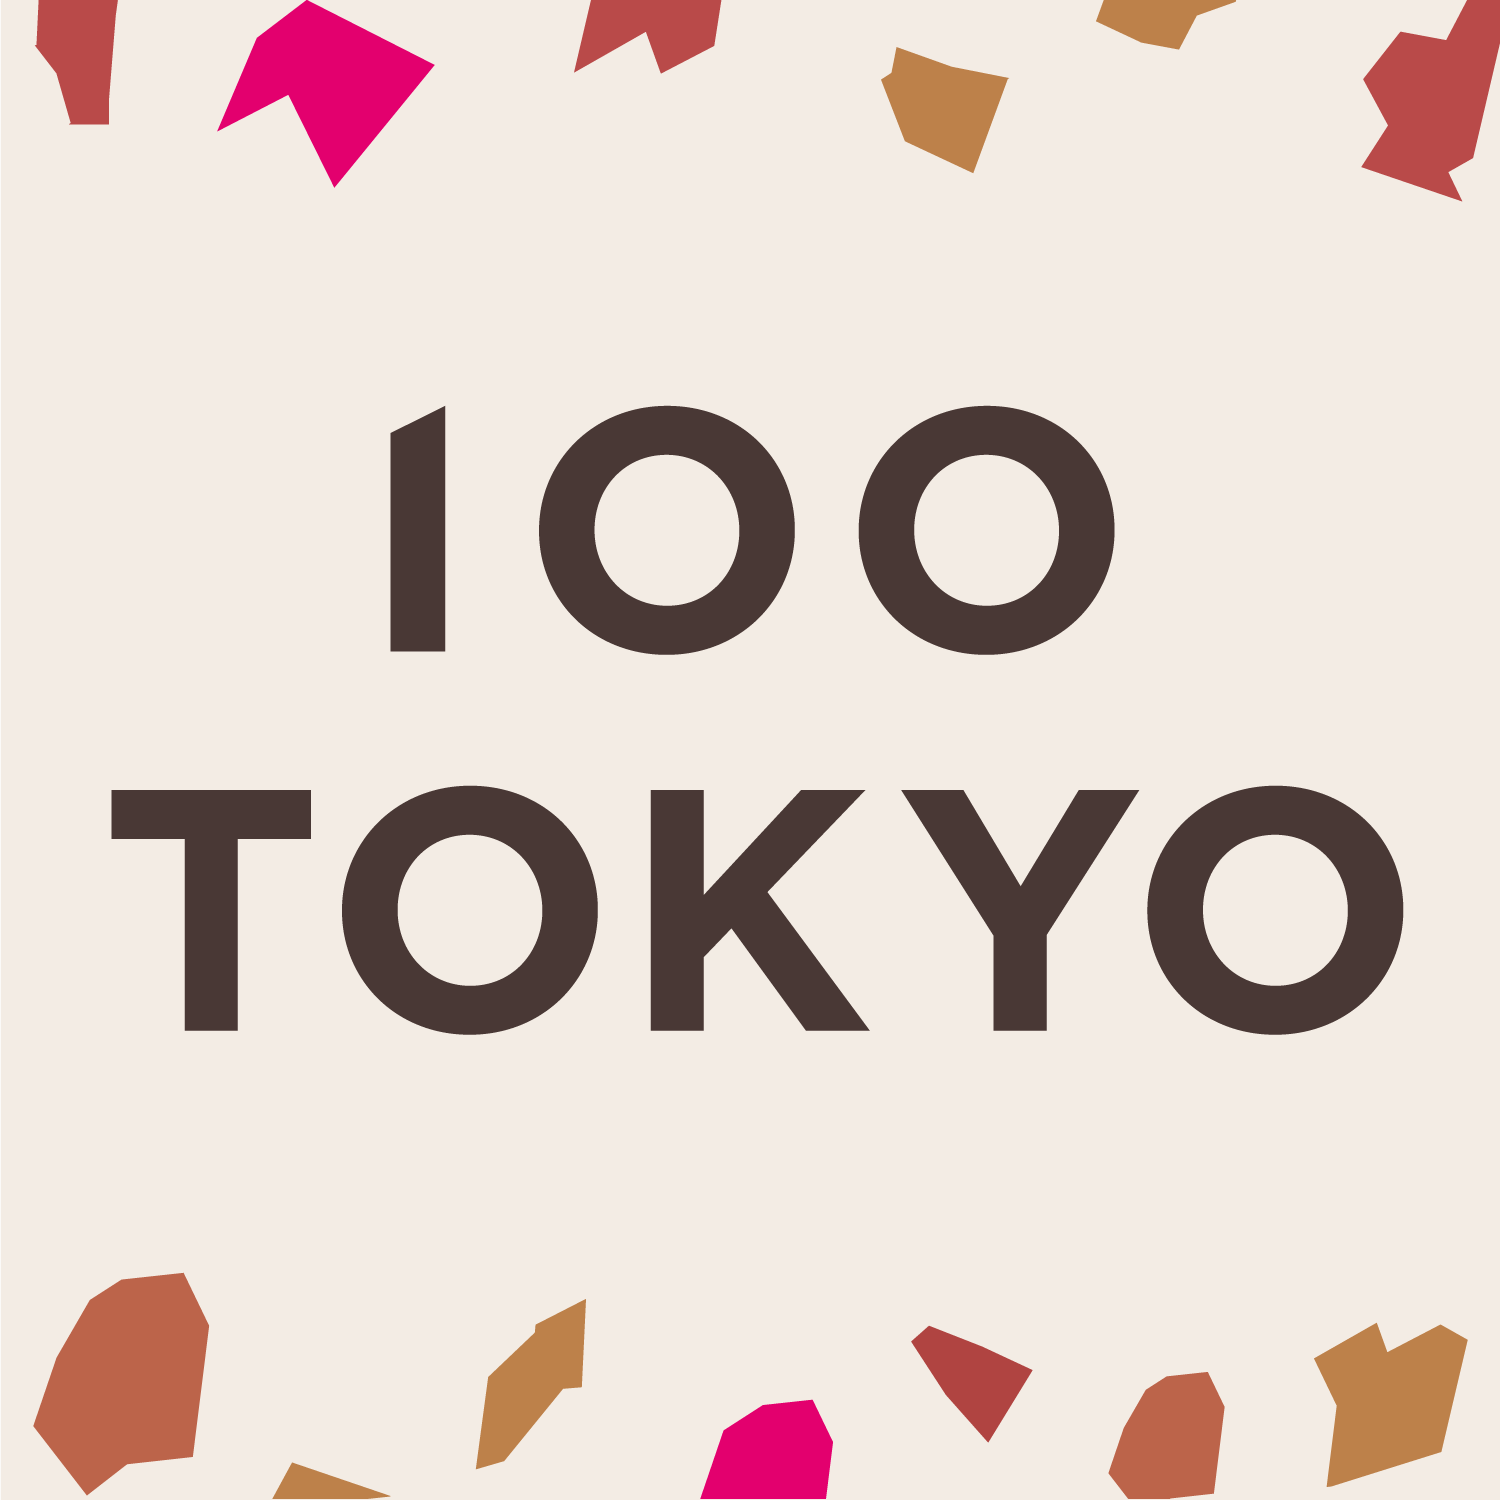 100 Tokyo is a visitors' guide to Tokyo's coolest attractions, events, shops, products, restaurants, hotels and more.